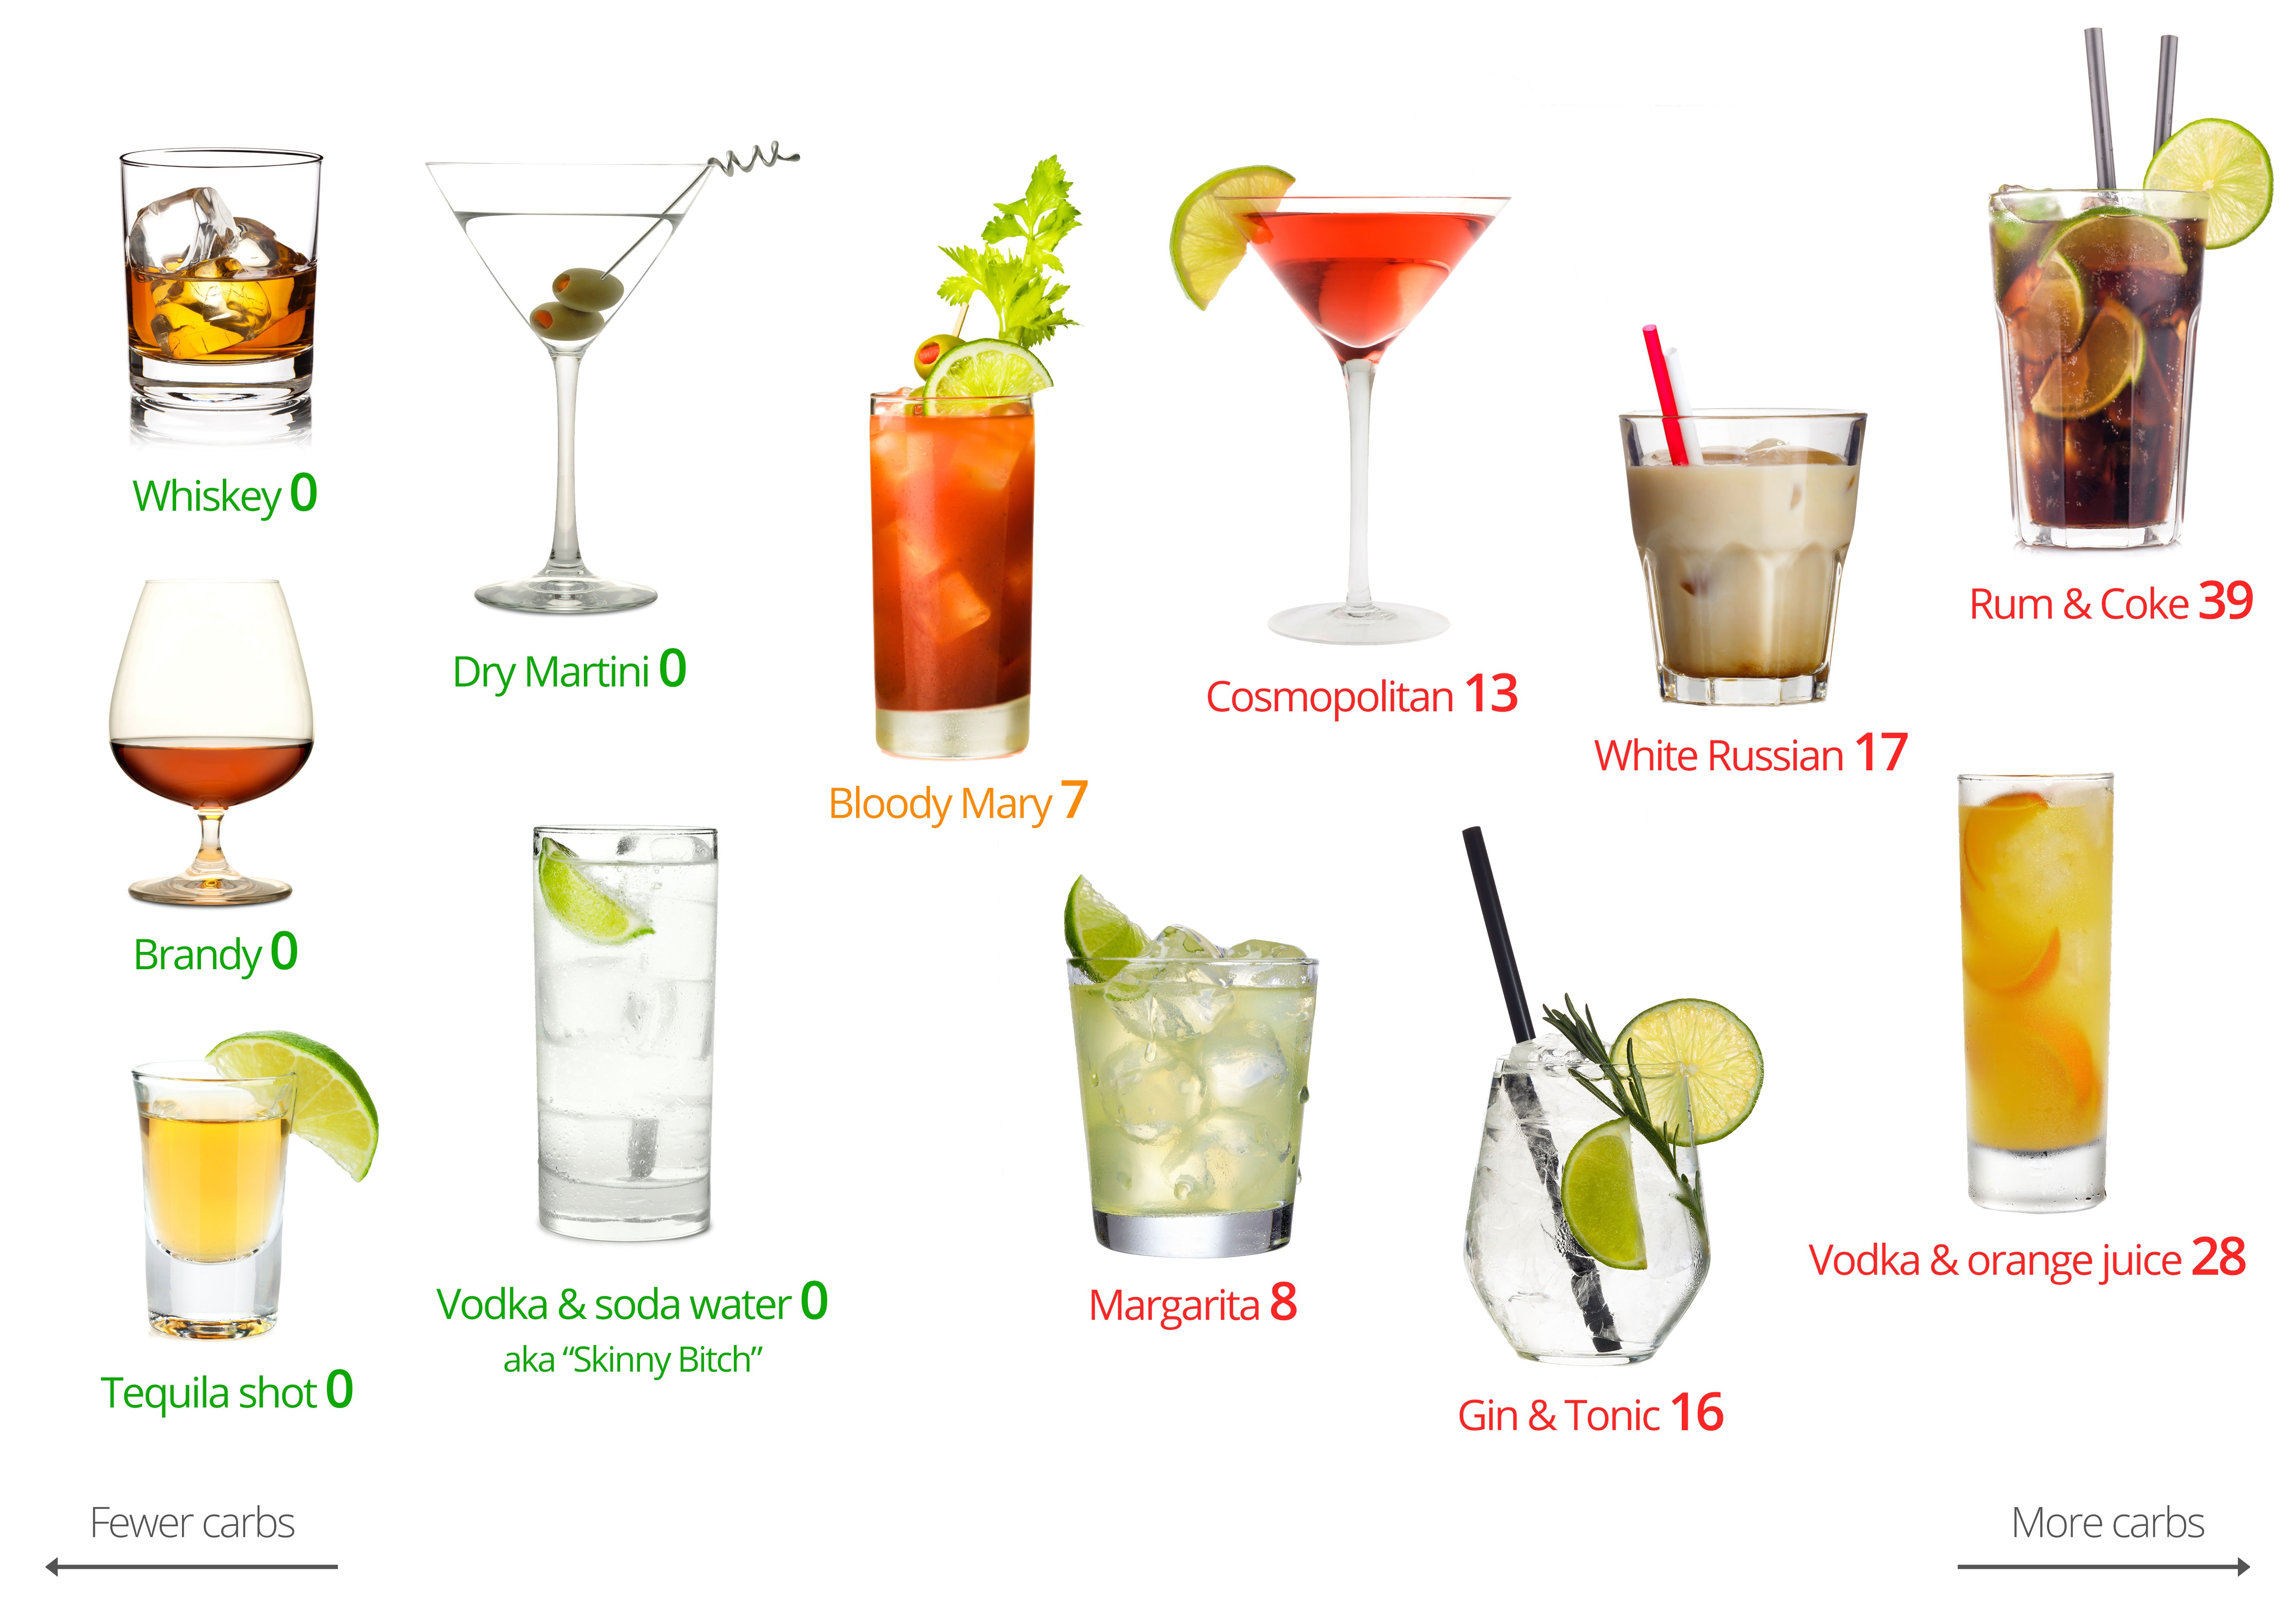 5 Low-Sugar Alcoholic Drinks for Weight Loss